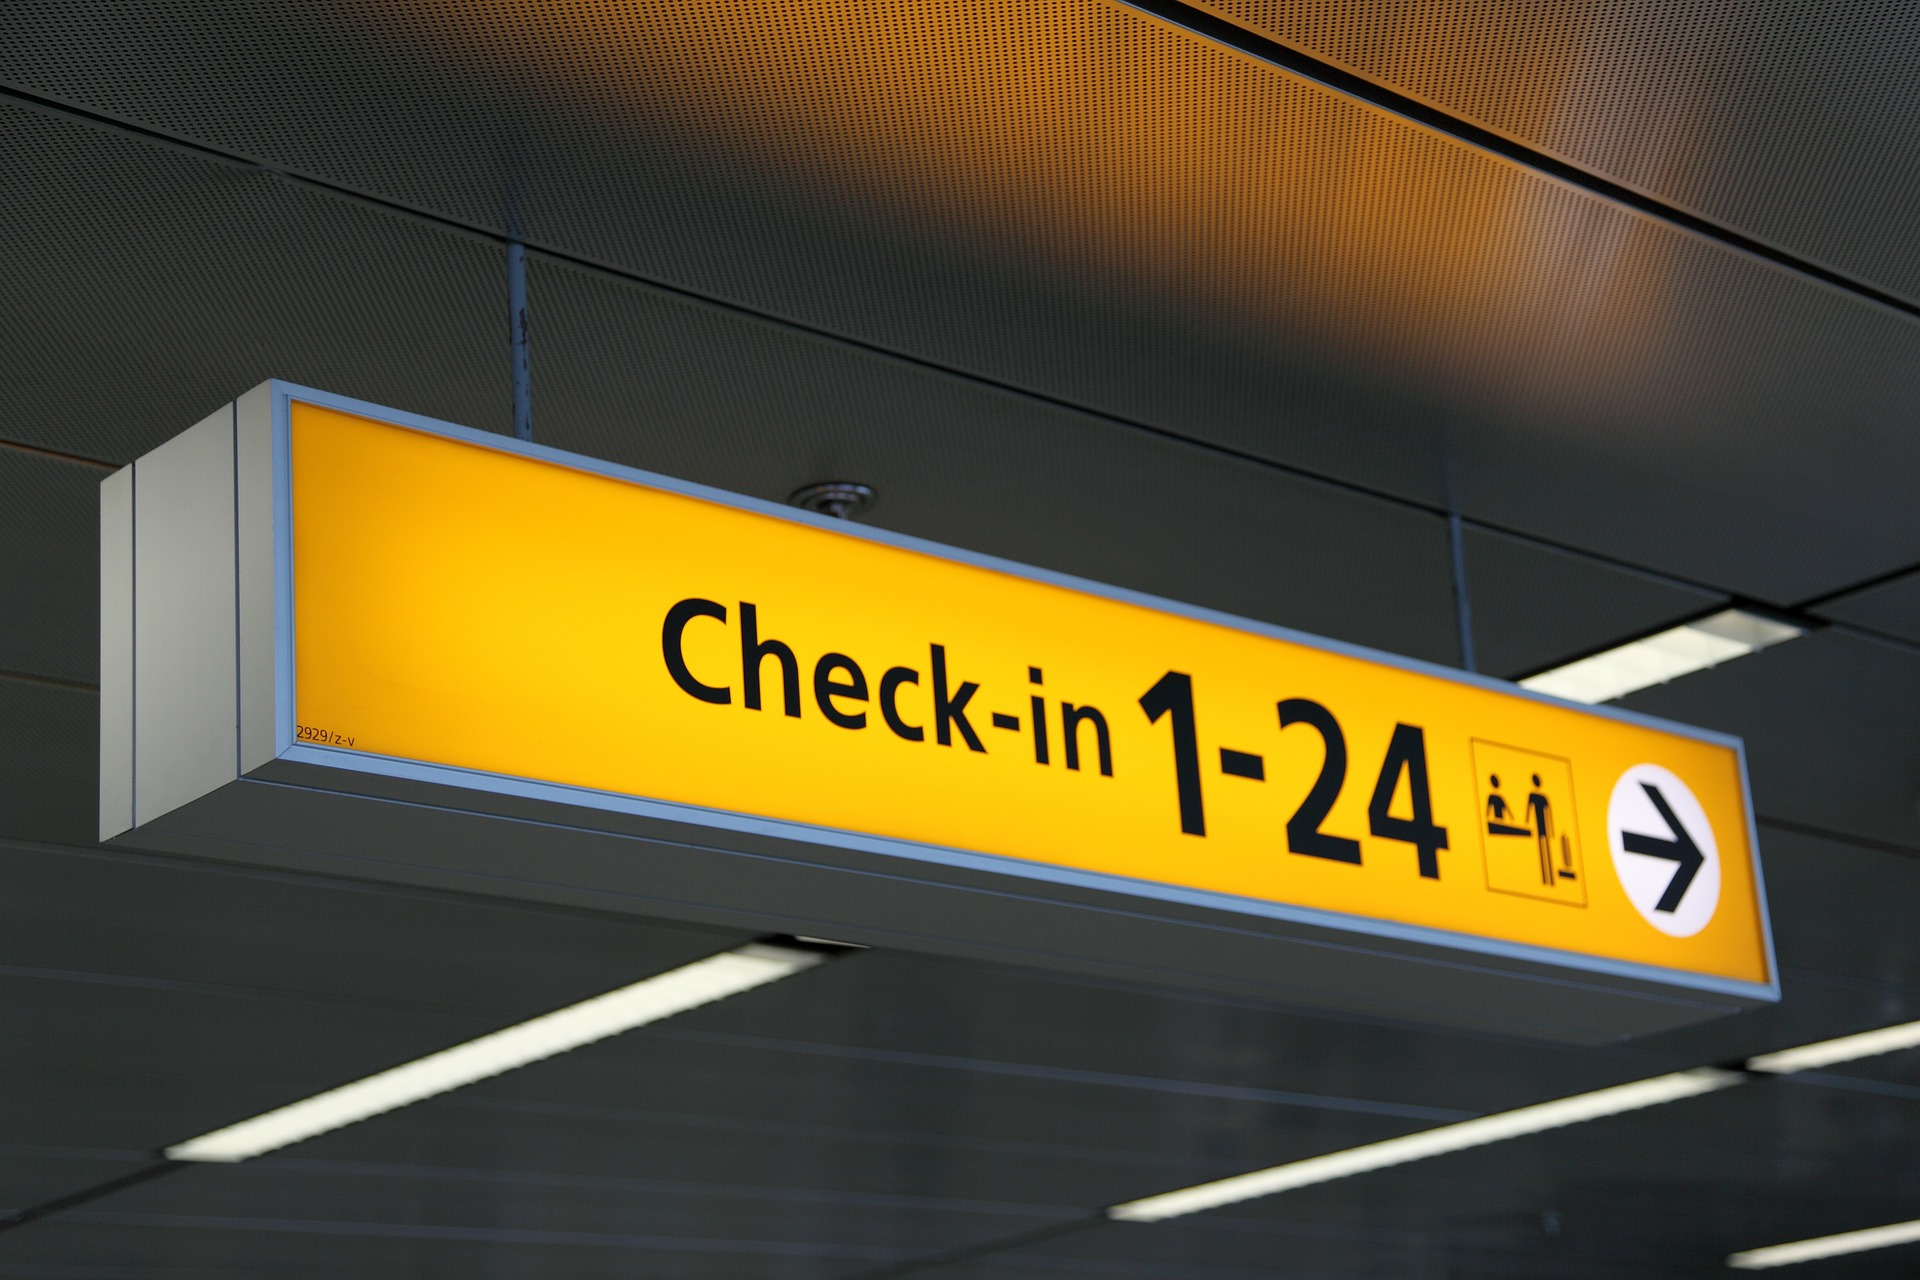 Travel checklist check-in